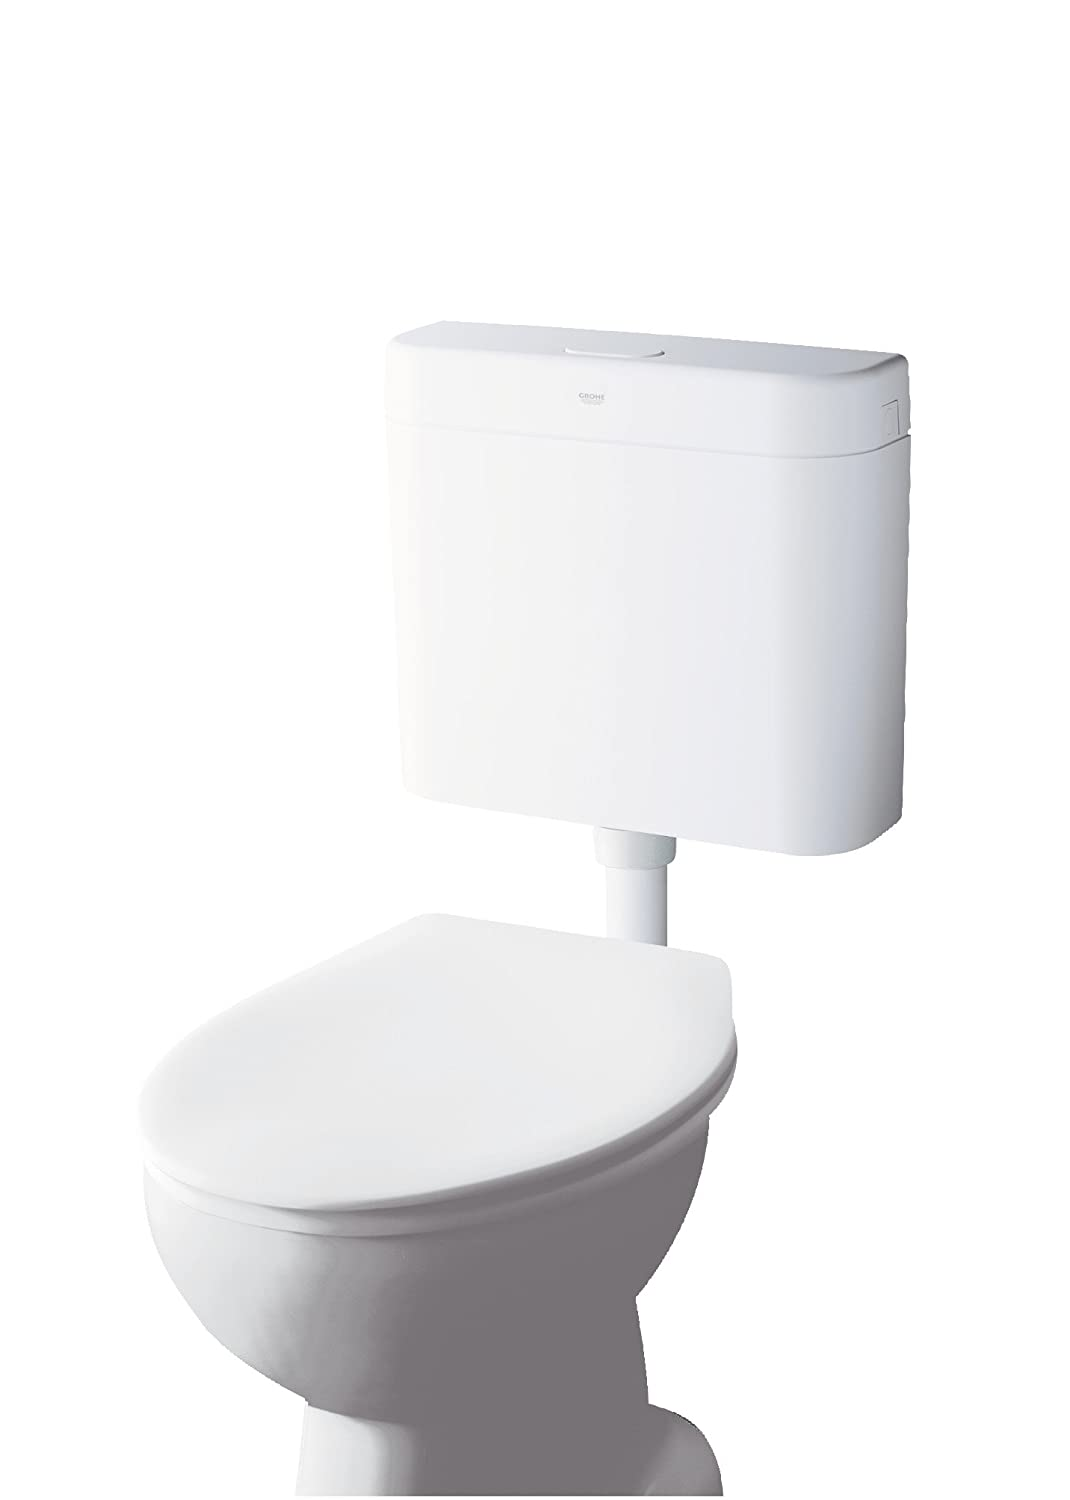 Grohe 37791SH0 Toilet Cistern 6-9 L Adjustable Start-Stop Water-Saving Function White